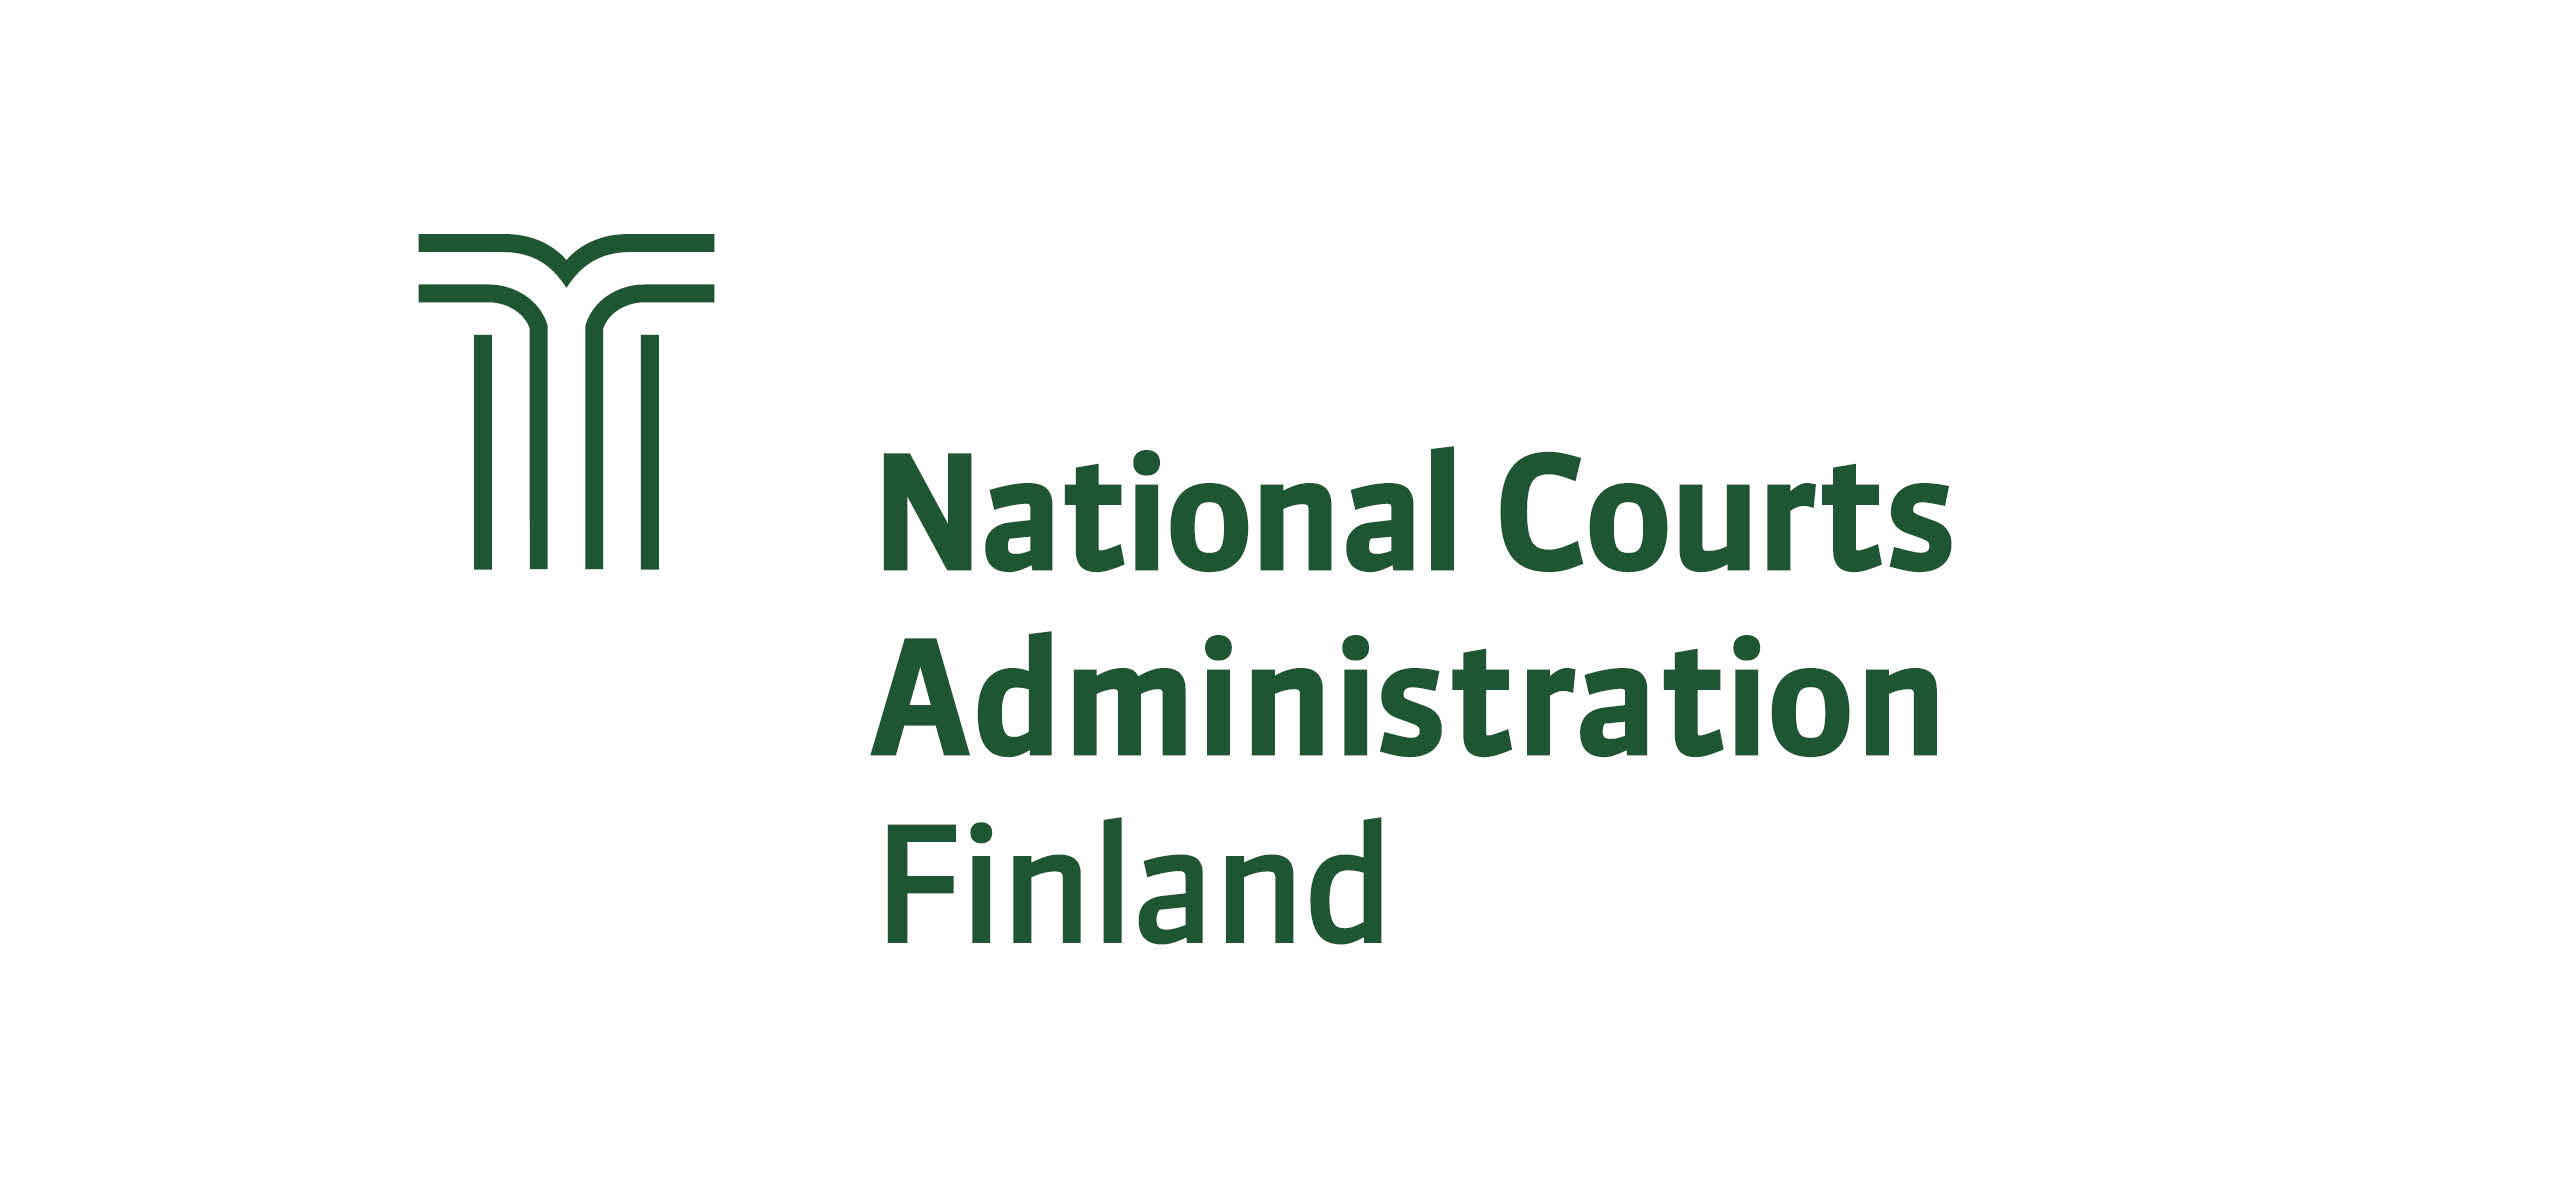 National Courts Administration